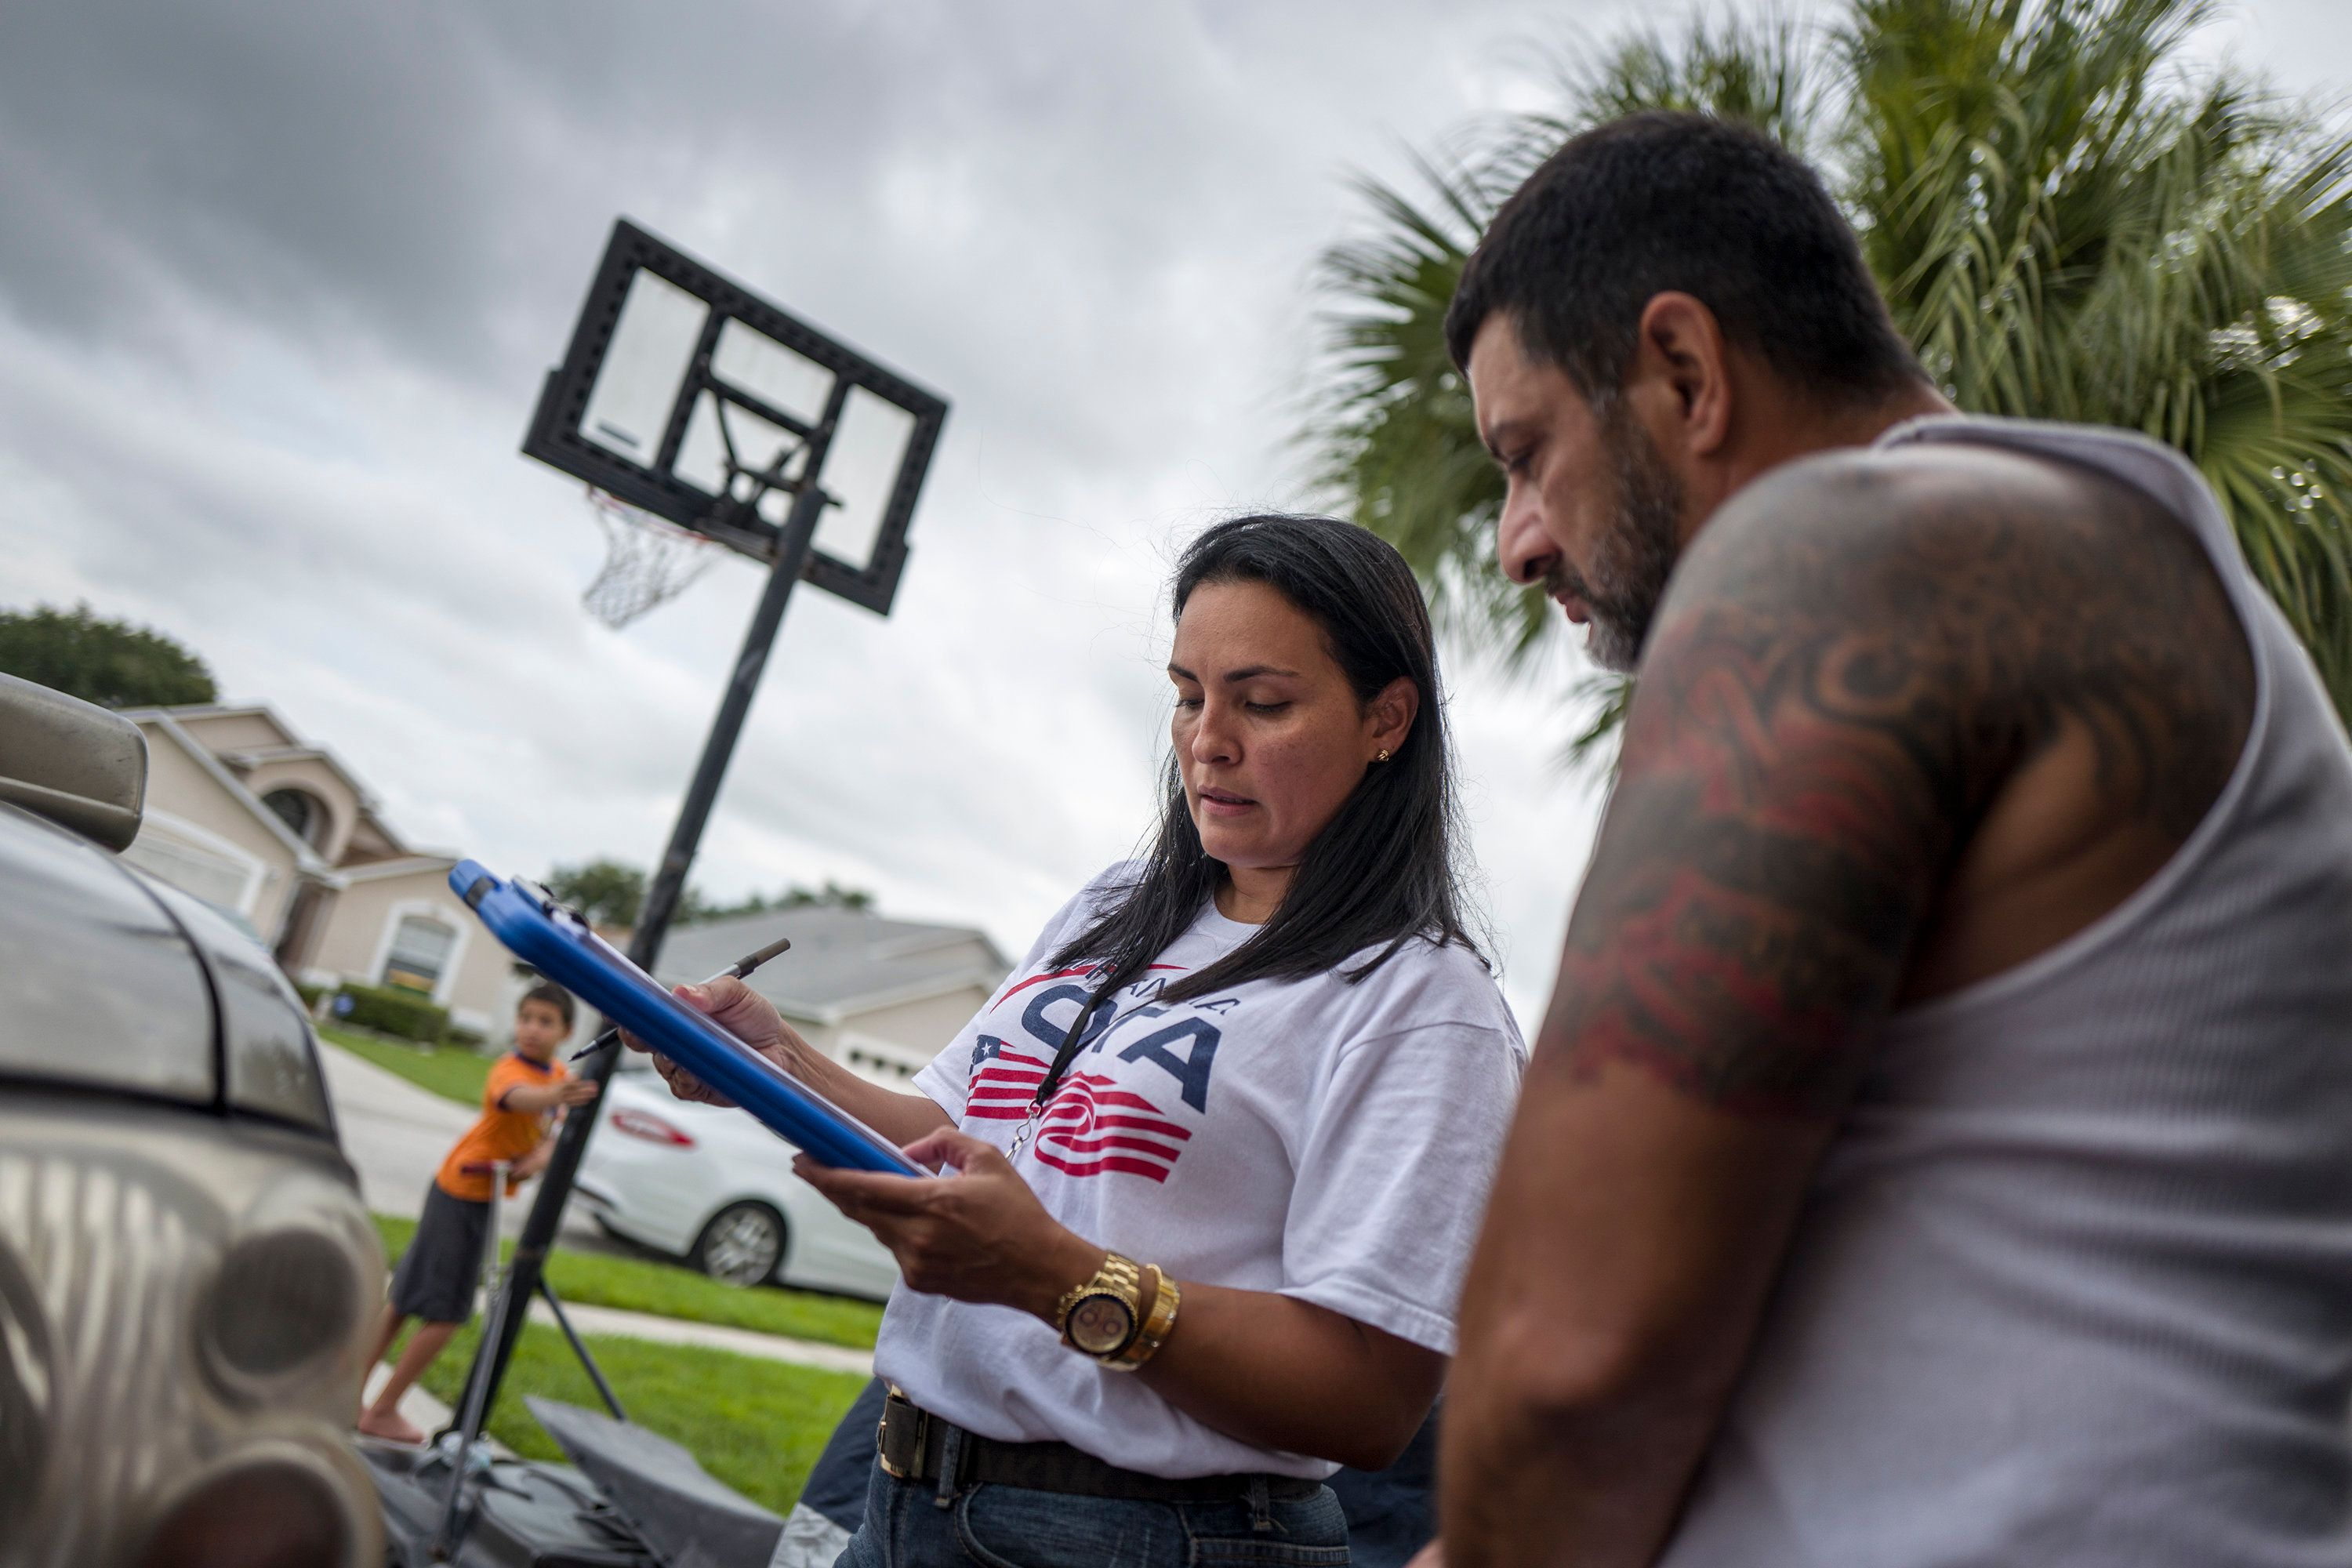 KISSIMMEE, FL - JULY 24: Soraya Marquez, the state coordinator for Mi Familia Vota and her crew hit a Puerto Rican neighborhood trying to get Latinos to register to vote in the 2016 presidential election on July 24, 2015 in Kissimmee, FL.  One of the crew, Mairy Reyes manages to persuade a man originally from Brooklyn to register to vote outside of his house in Kissimmee. (Photos by Charles Ommanney/The Washington Post via Getty Images)